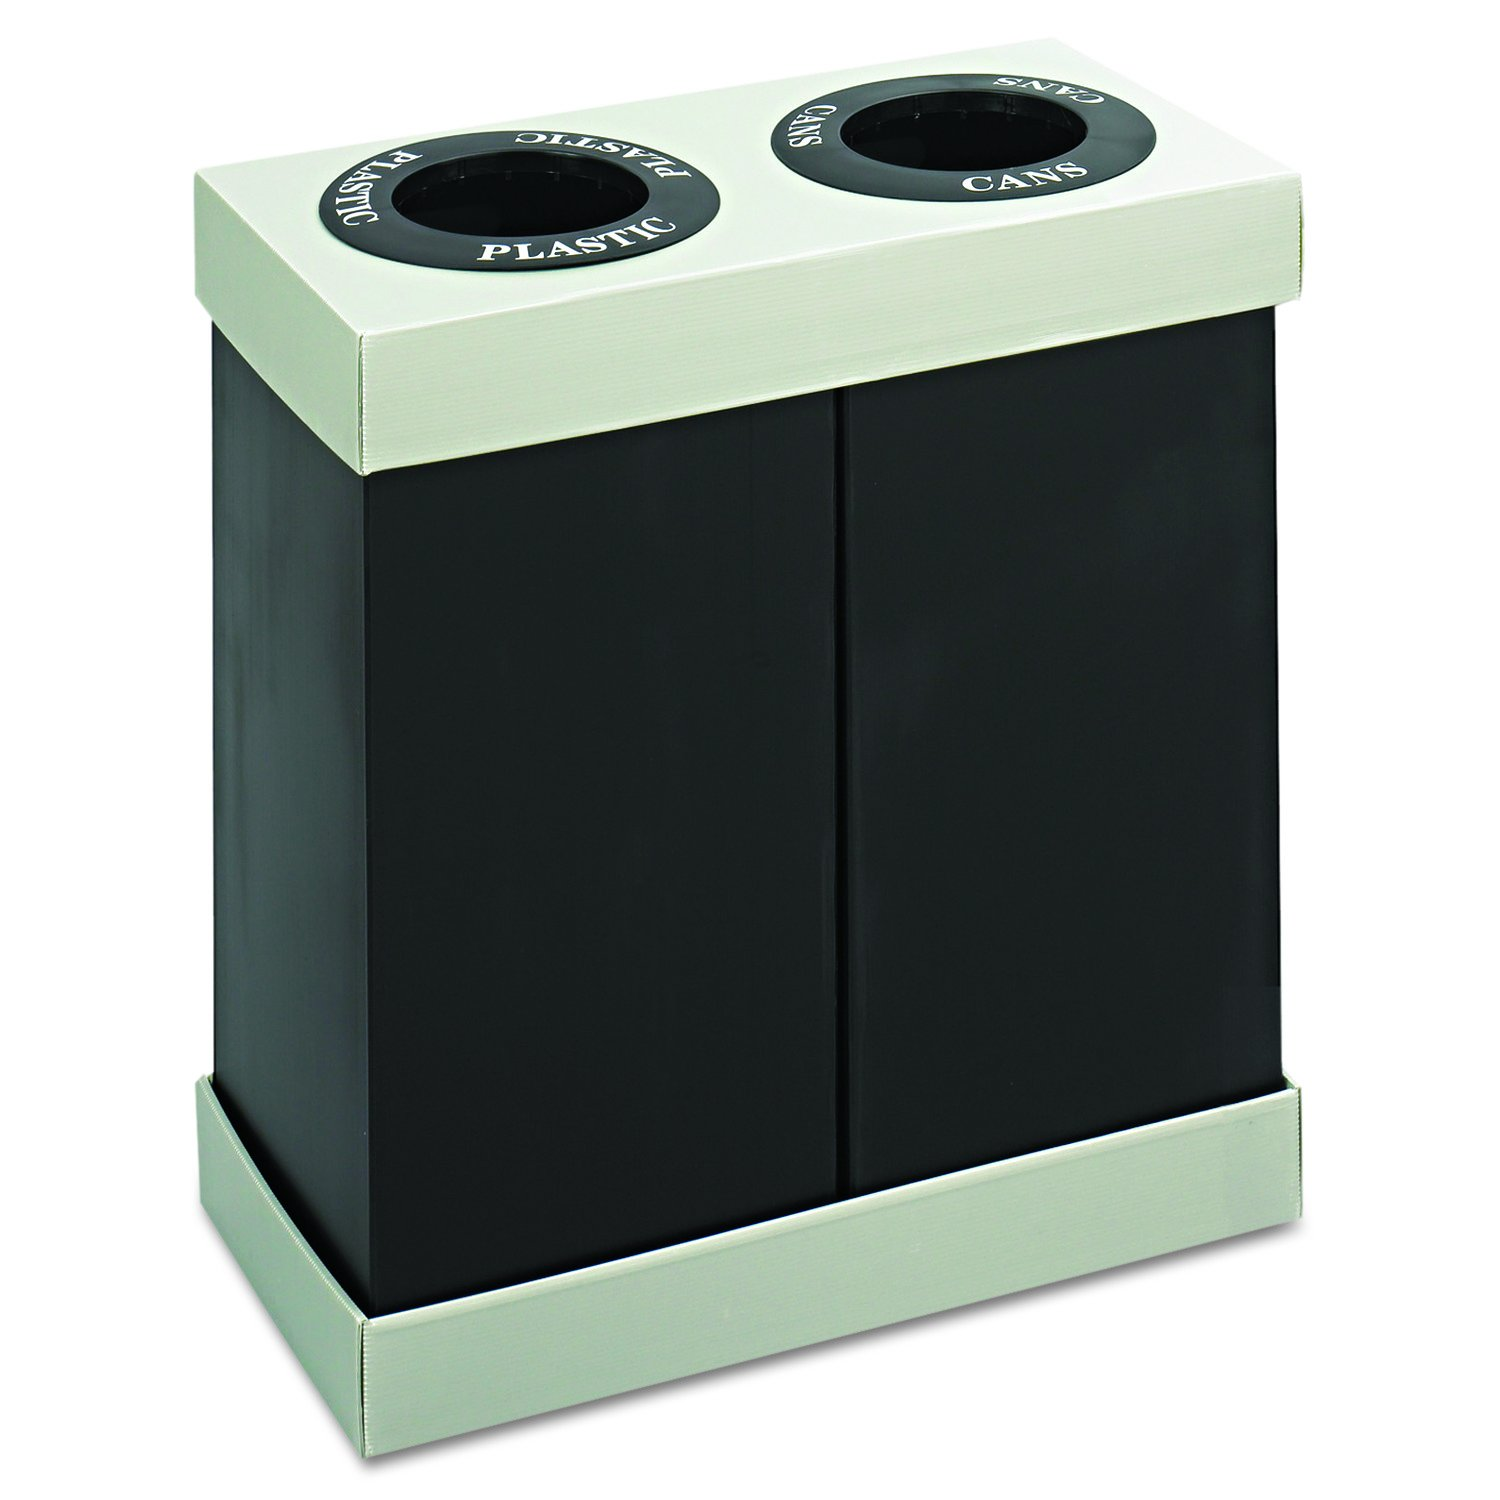 Safco Products 9794BL At-Your-Disposal Waste Recycling Center, Two 28-Gallon Bins, Black